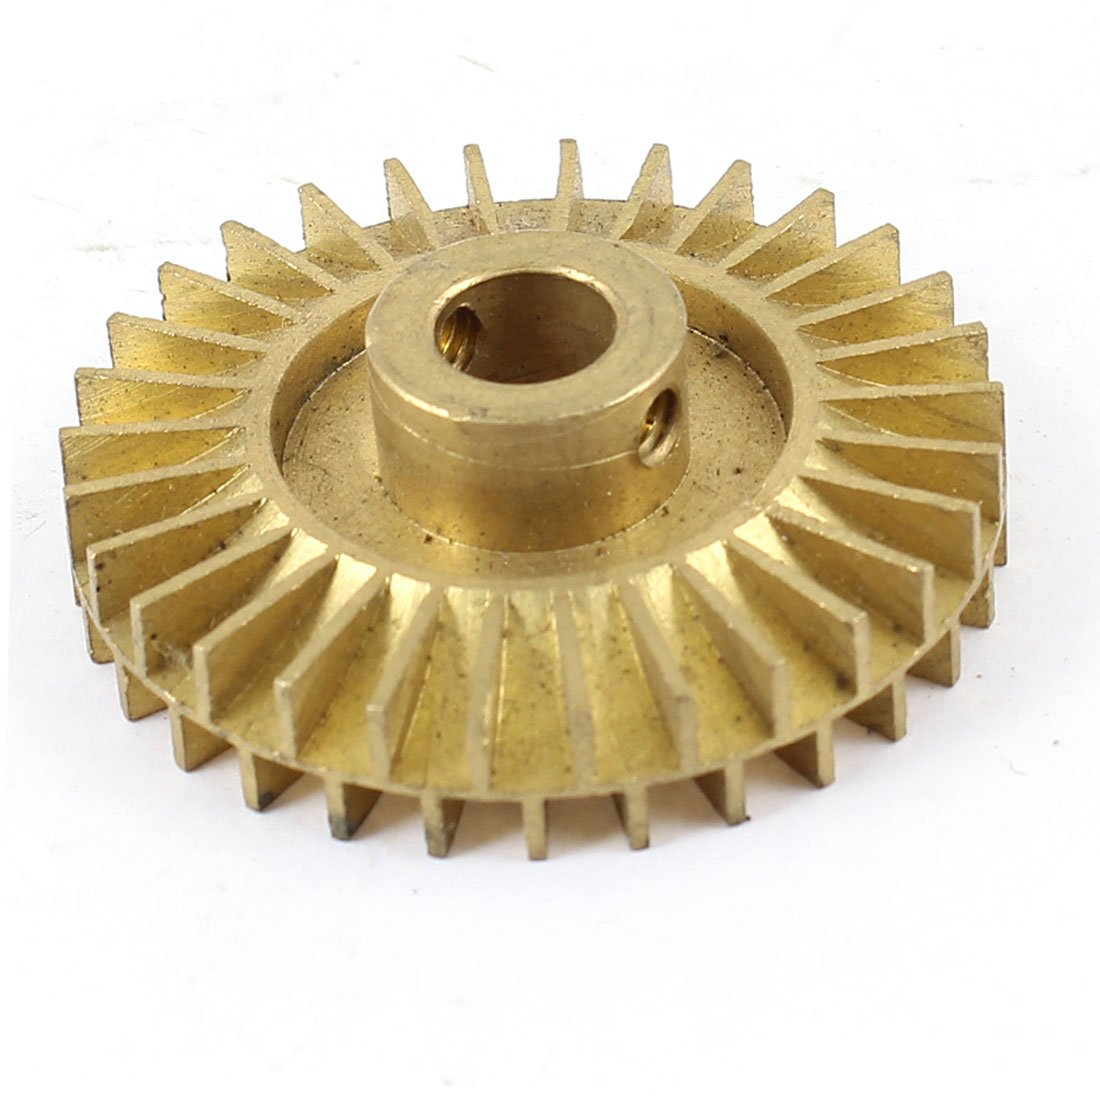 Water Pump Replacement Double Side 42mm Dia Gold Tone Brass Impeller Sourcingmap a13112700ux0152